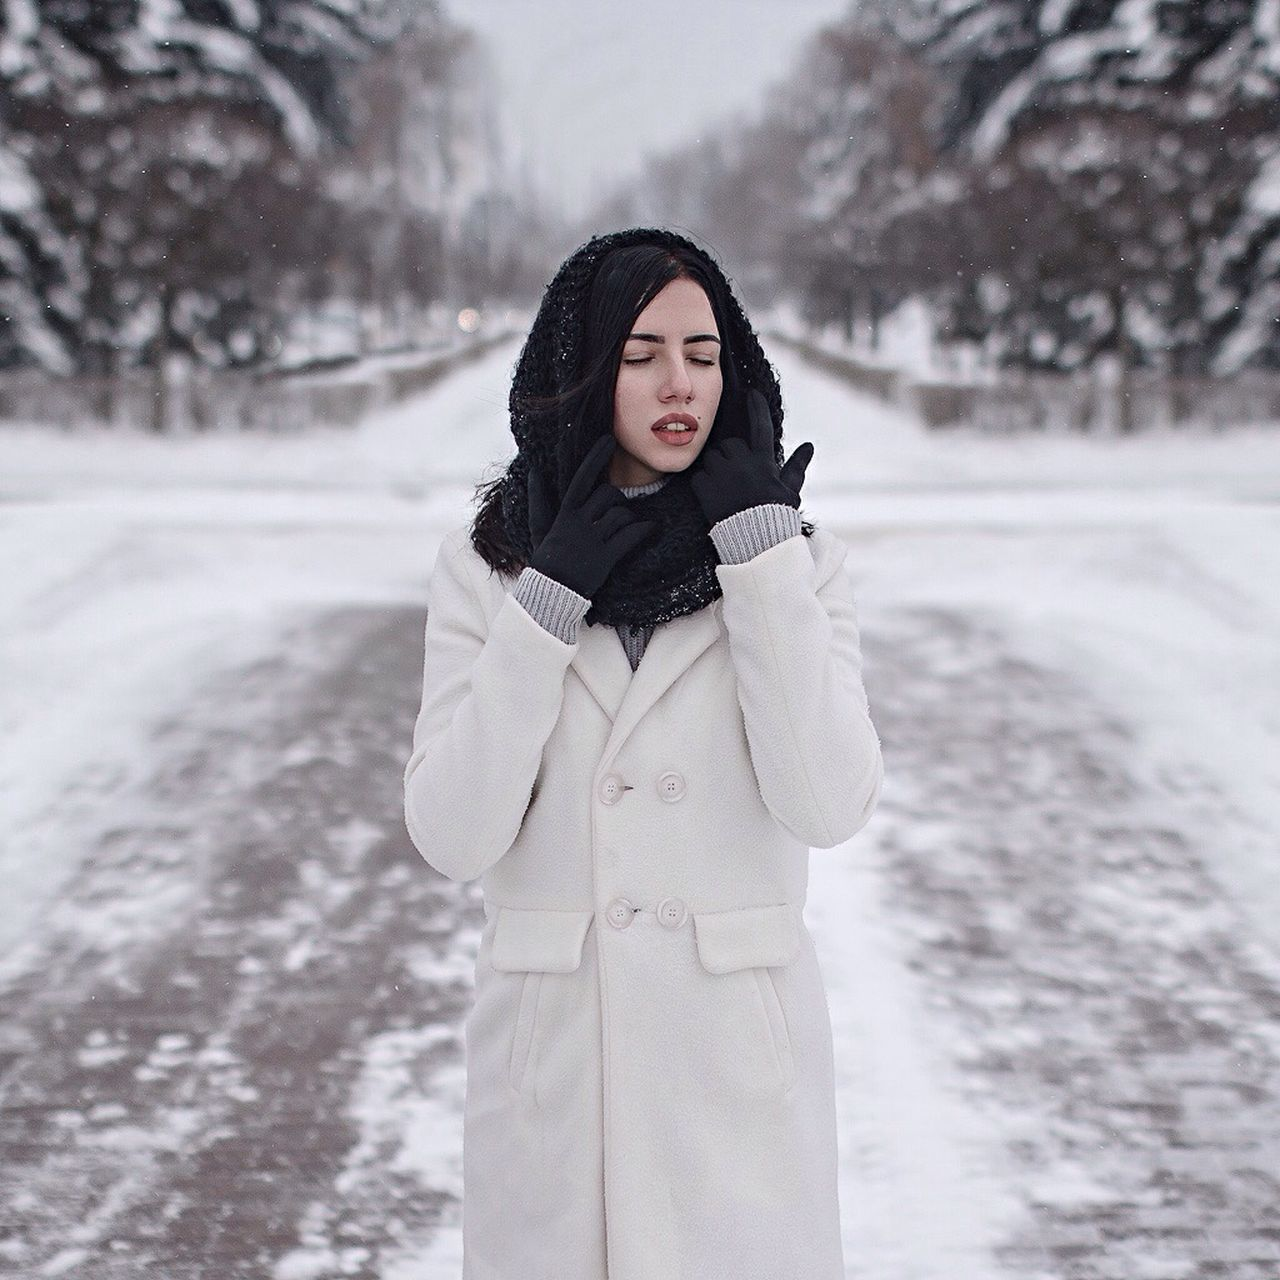 Winter Snow Cold Temperature White Color Nature Young Adult Warm Clothing Beauty Joy Adult Women One Person People Adults Only Portrait Outdoors Only Women Human Body Part One Woman Only Tree Eyeemphoto Eyemphotography EyeEm EyeEm Gallery Eyeemphotography